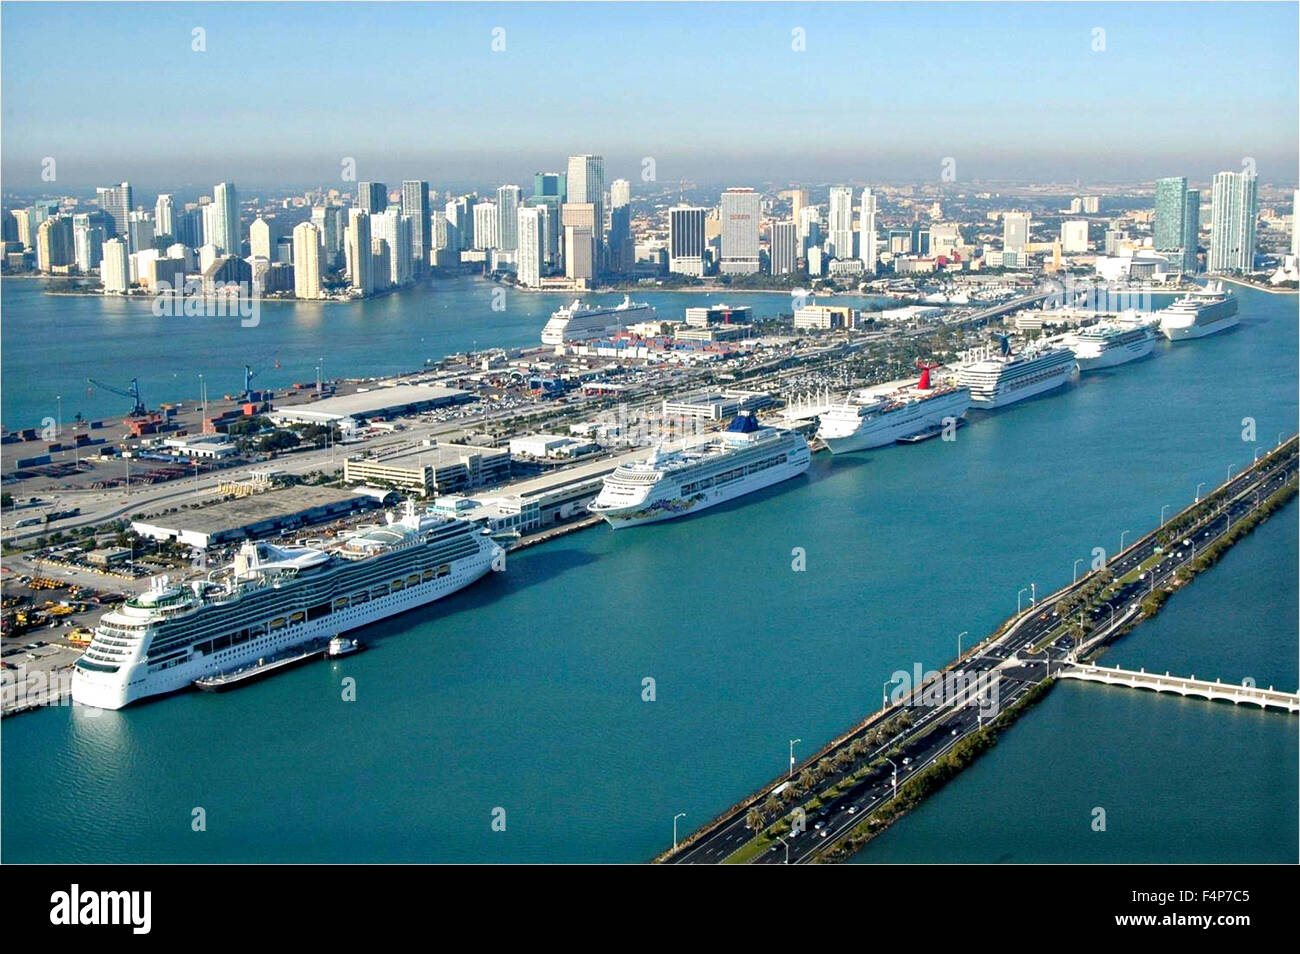 Miami Port Aerial View Of The Port Of Miami Cruise Ship Terminal And Cargo In